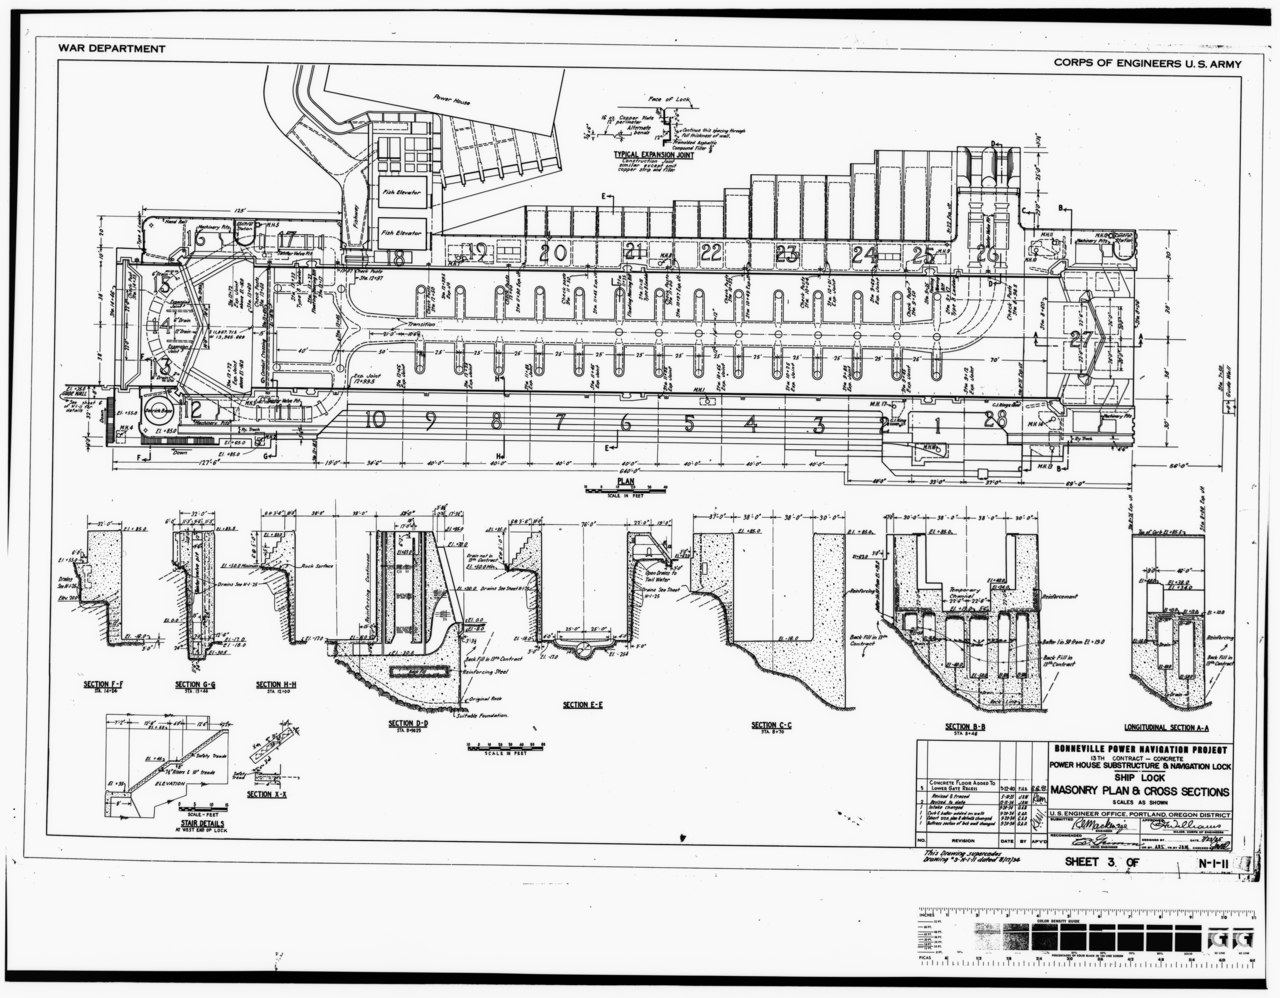 File Photocopy Of Original Construction Drawing Dated 23